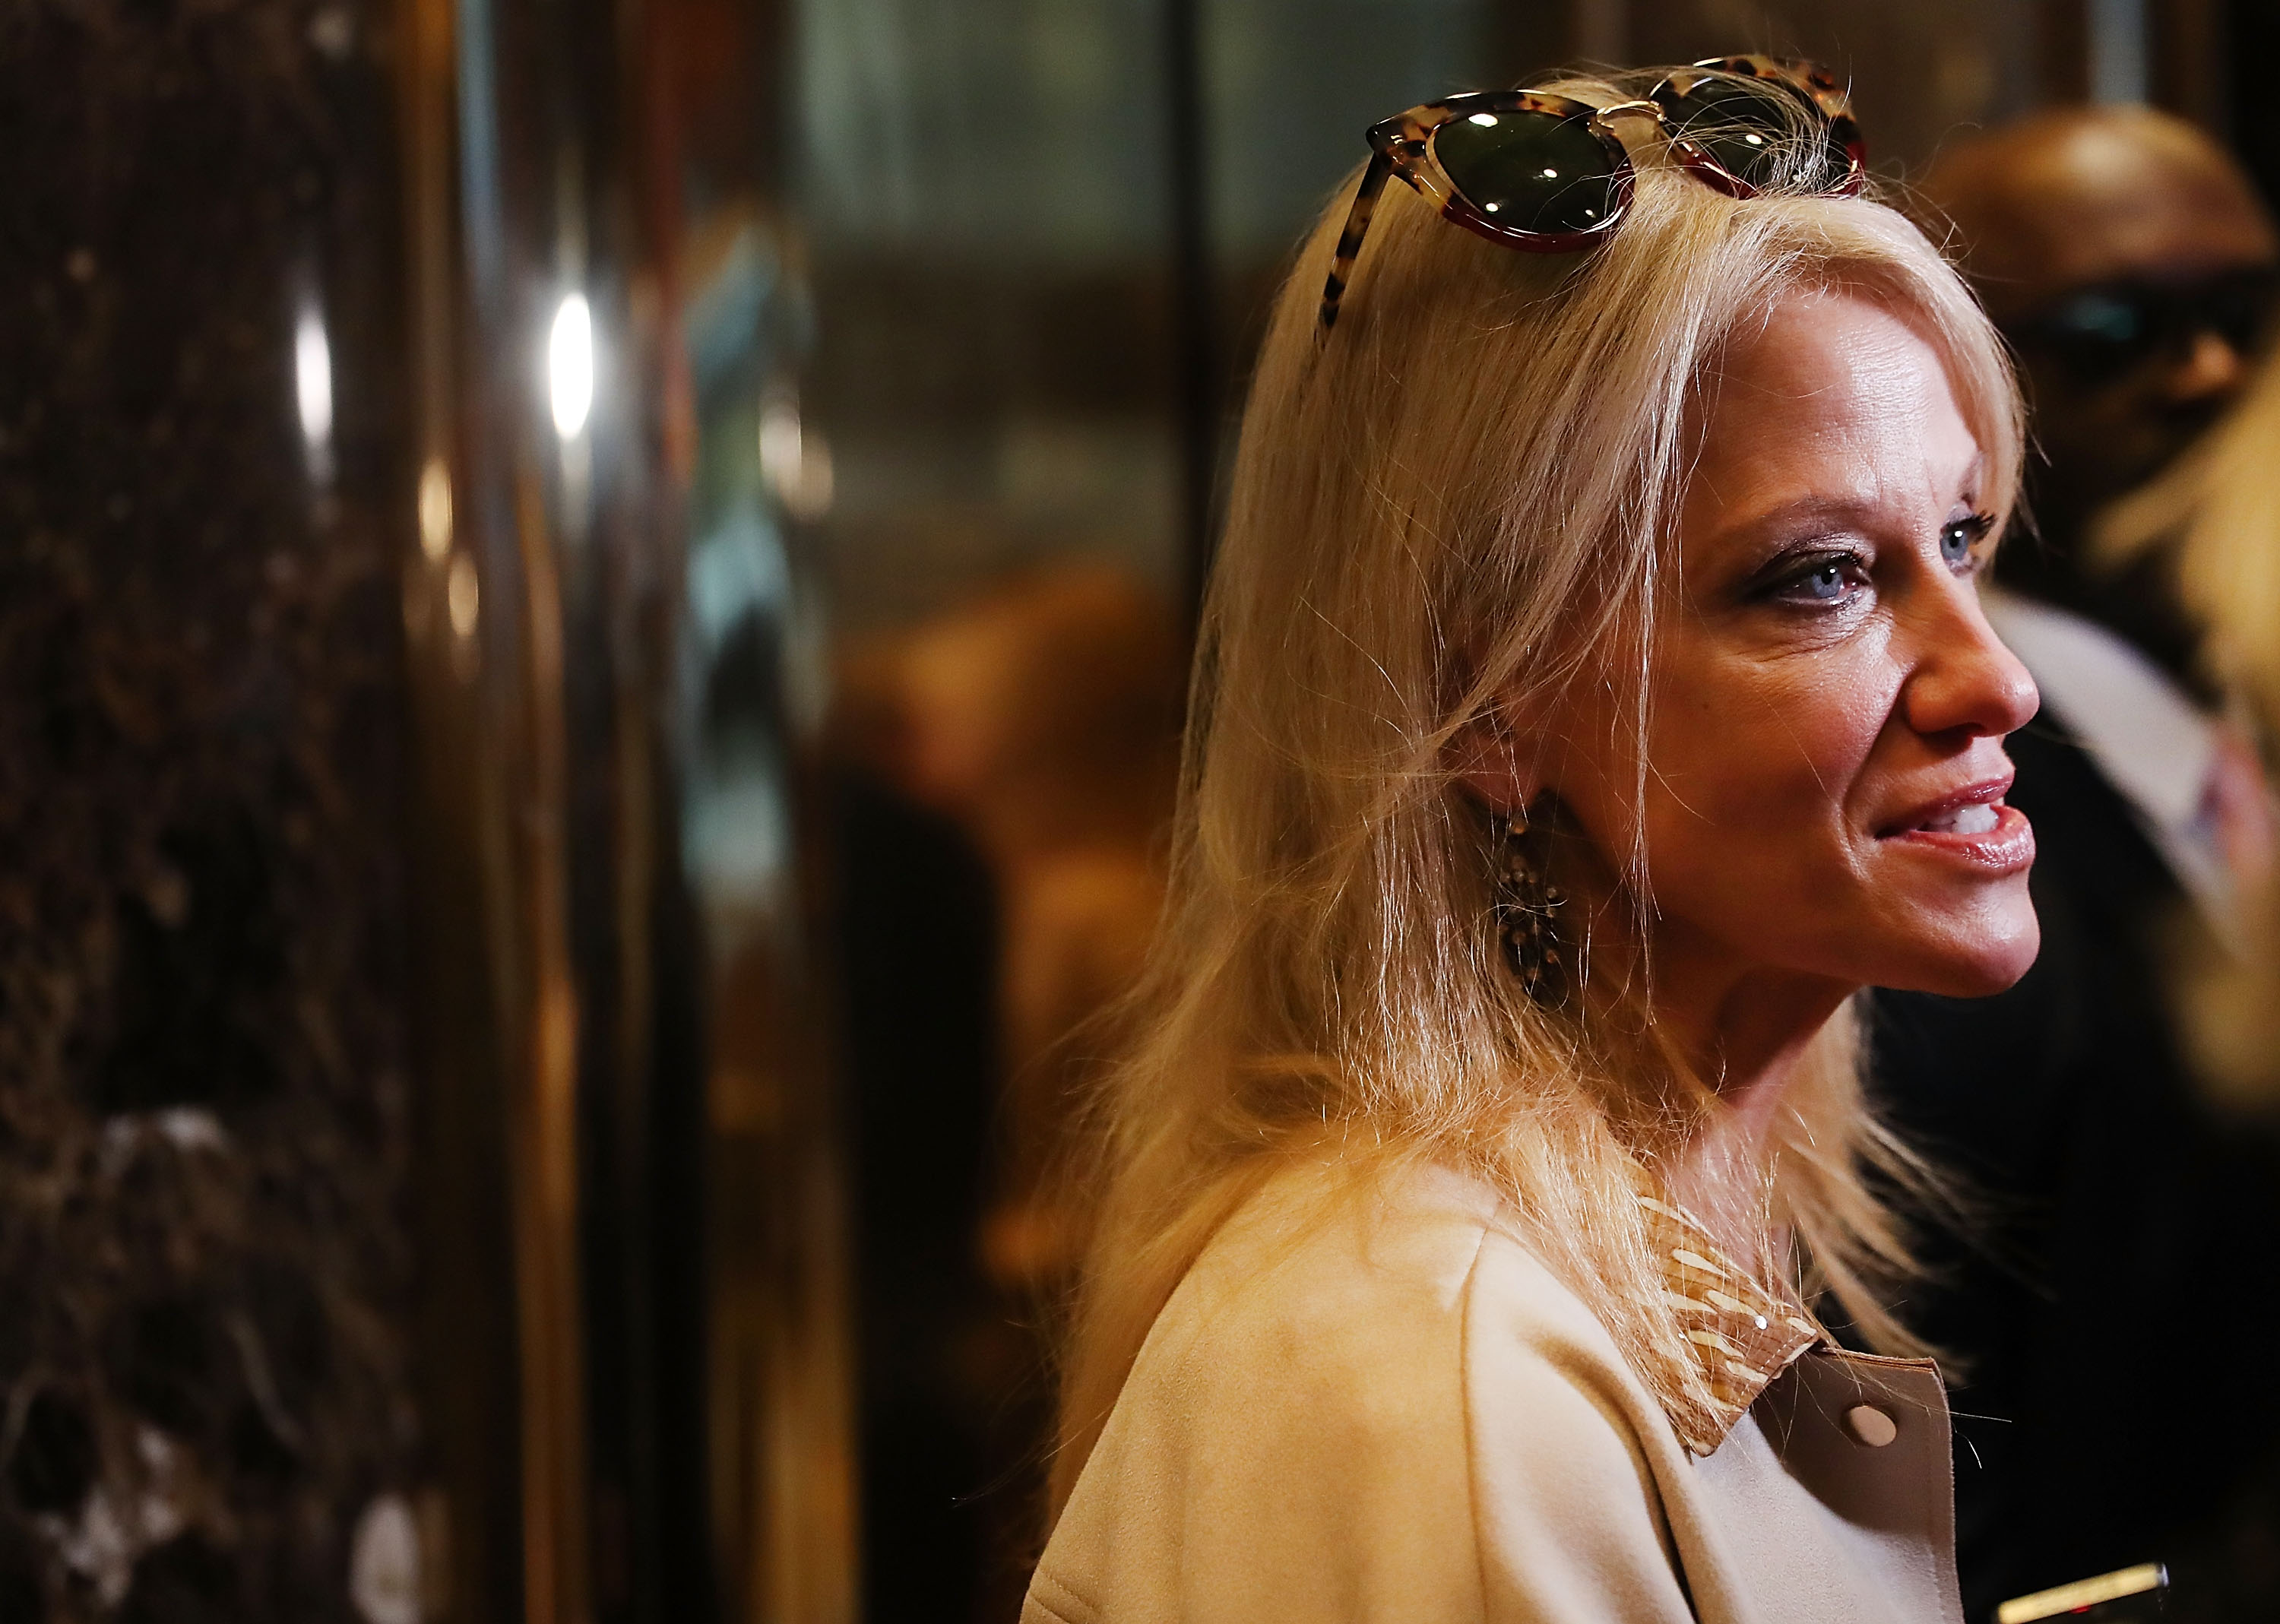 Donald Trump's campaign manager Kellyanne Conway speaks to the media while entering Trump Tower on Nov. 14, 2016 in New York City.